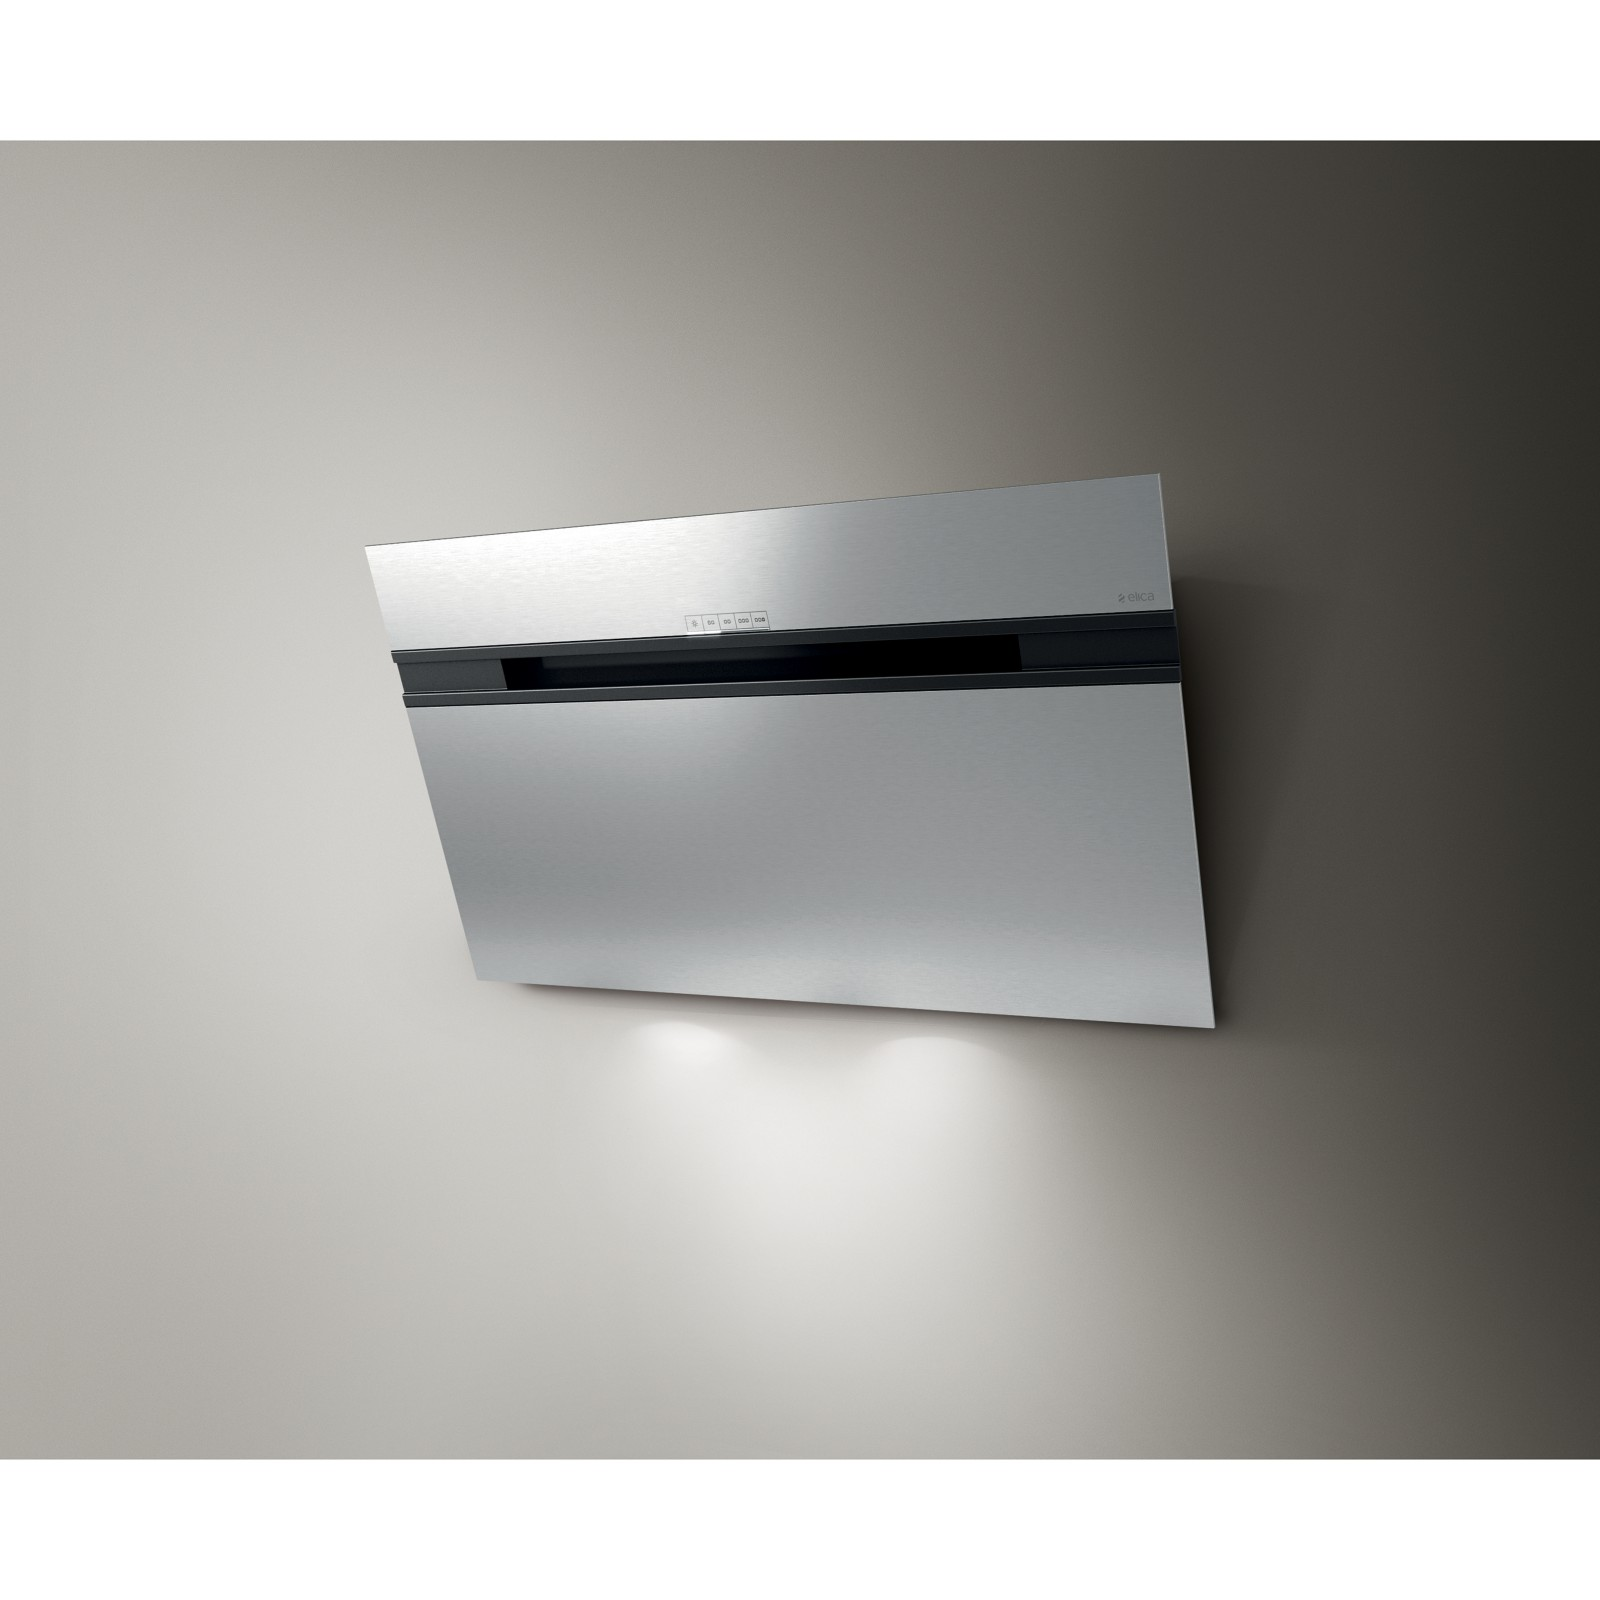 Elica Ascent 90cm Wall Mounted Chimney Cooker Hood Stainless Steel